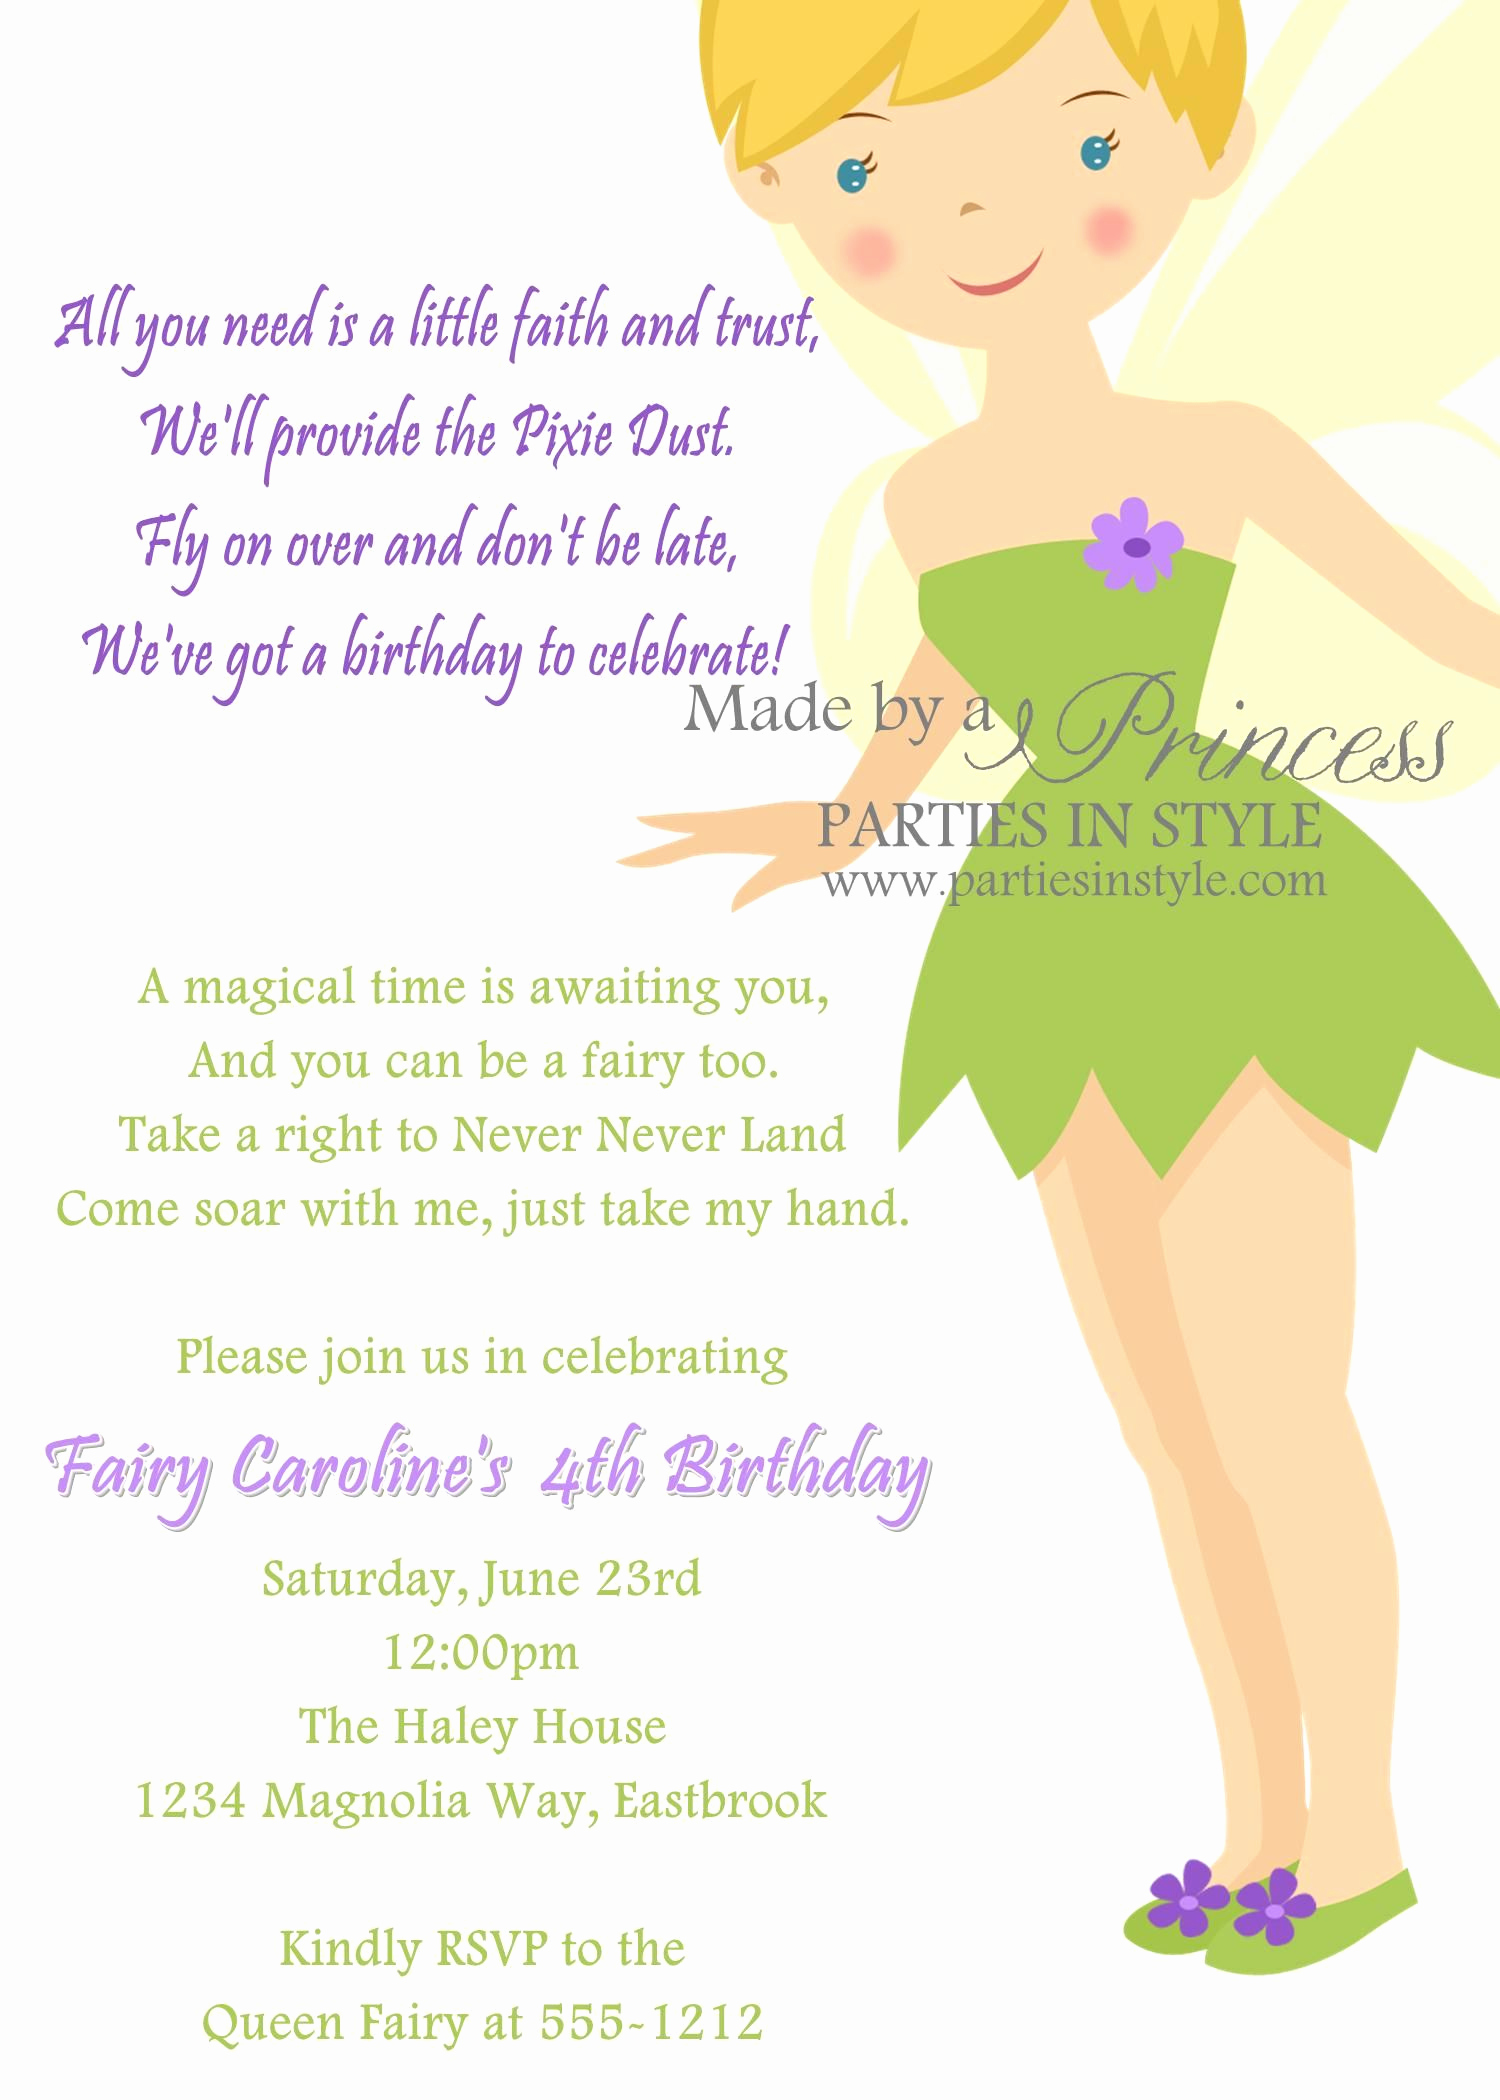 Tinkerbell Invitation Template Free Elegant Birthday Invitation Princess Series Tinkerbell